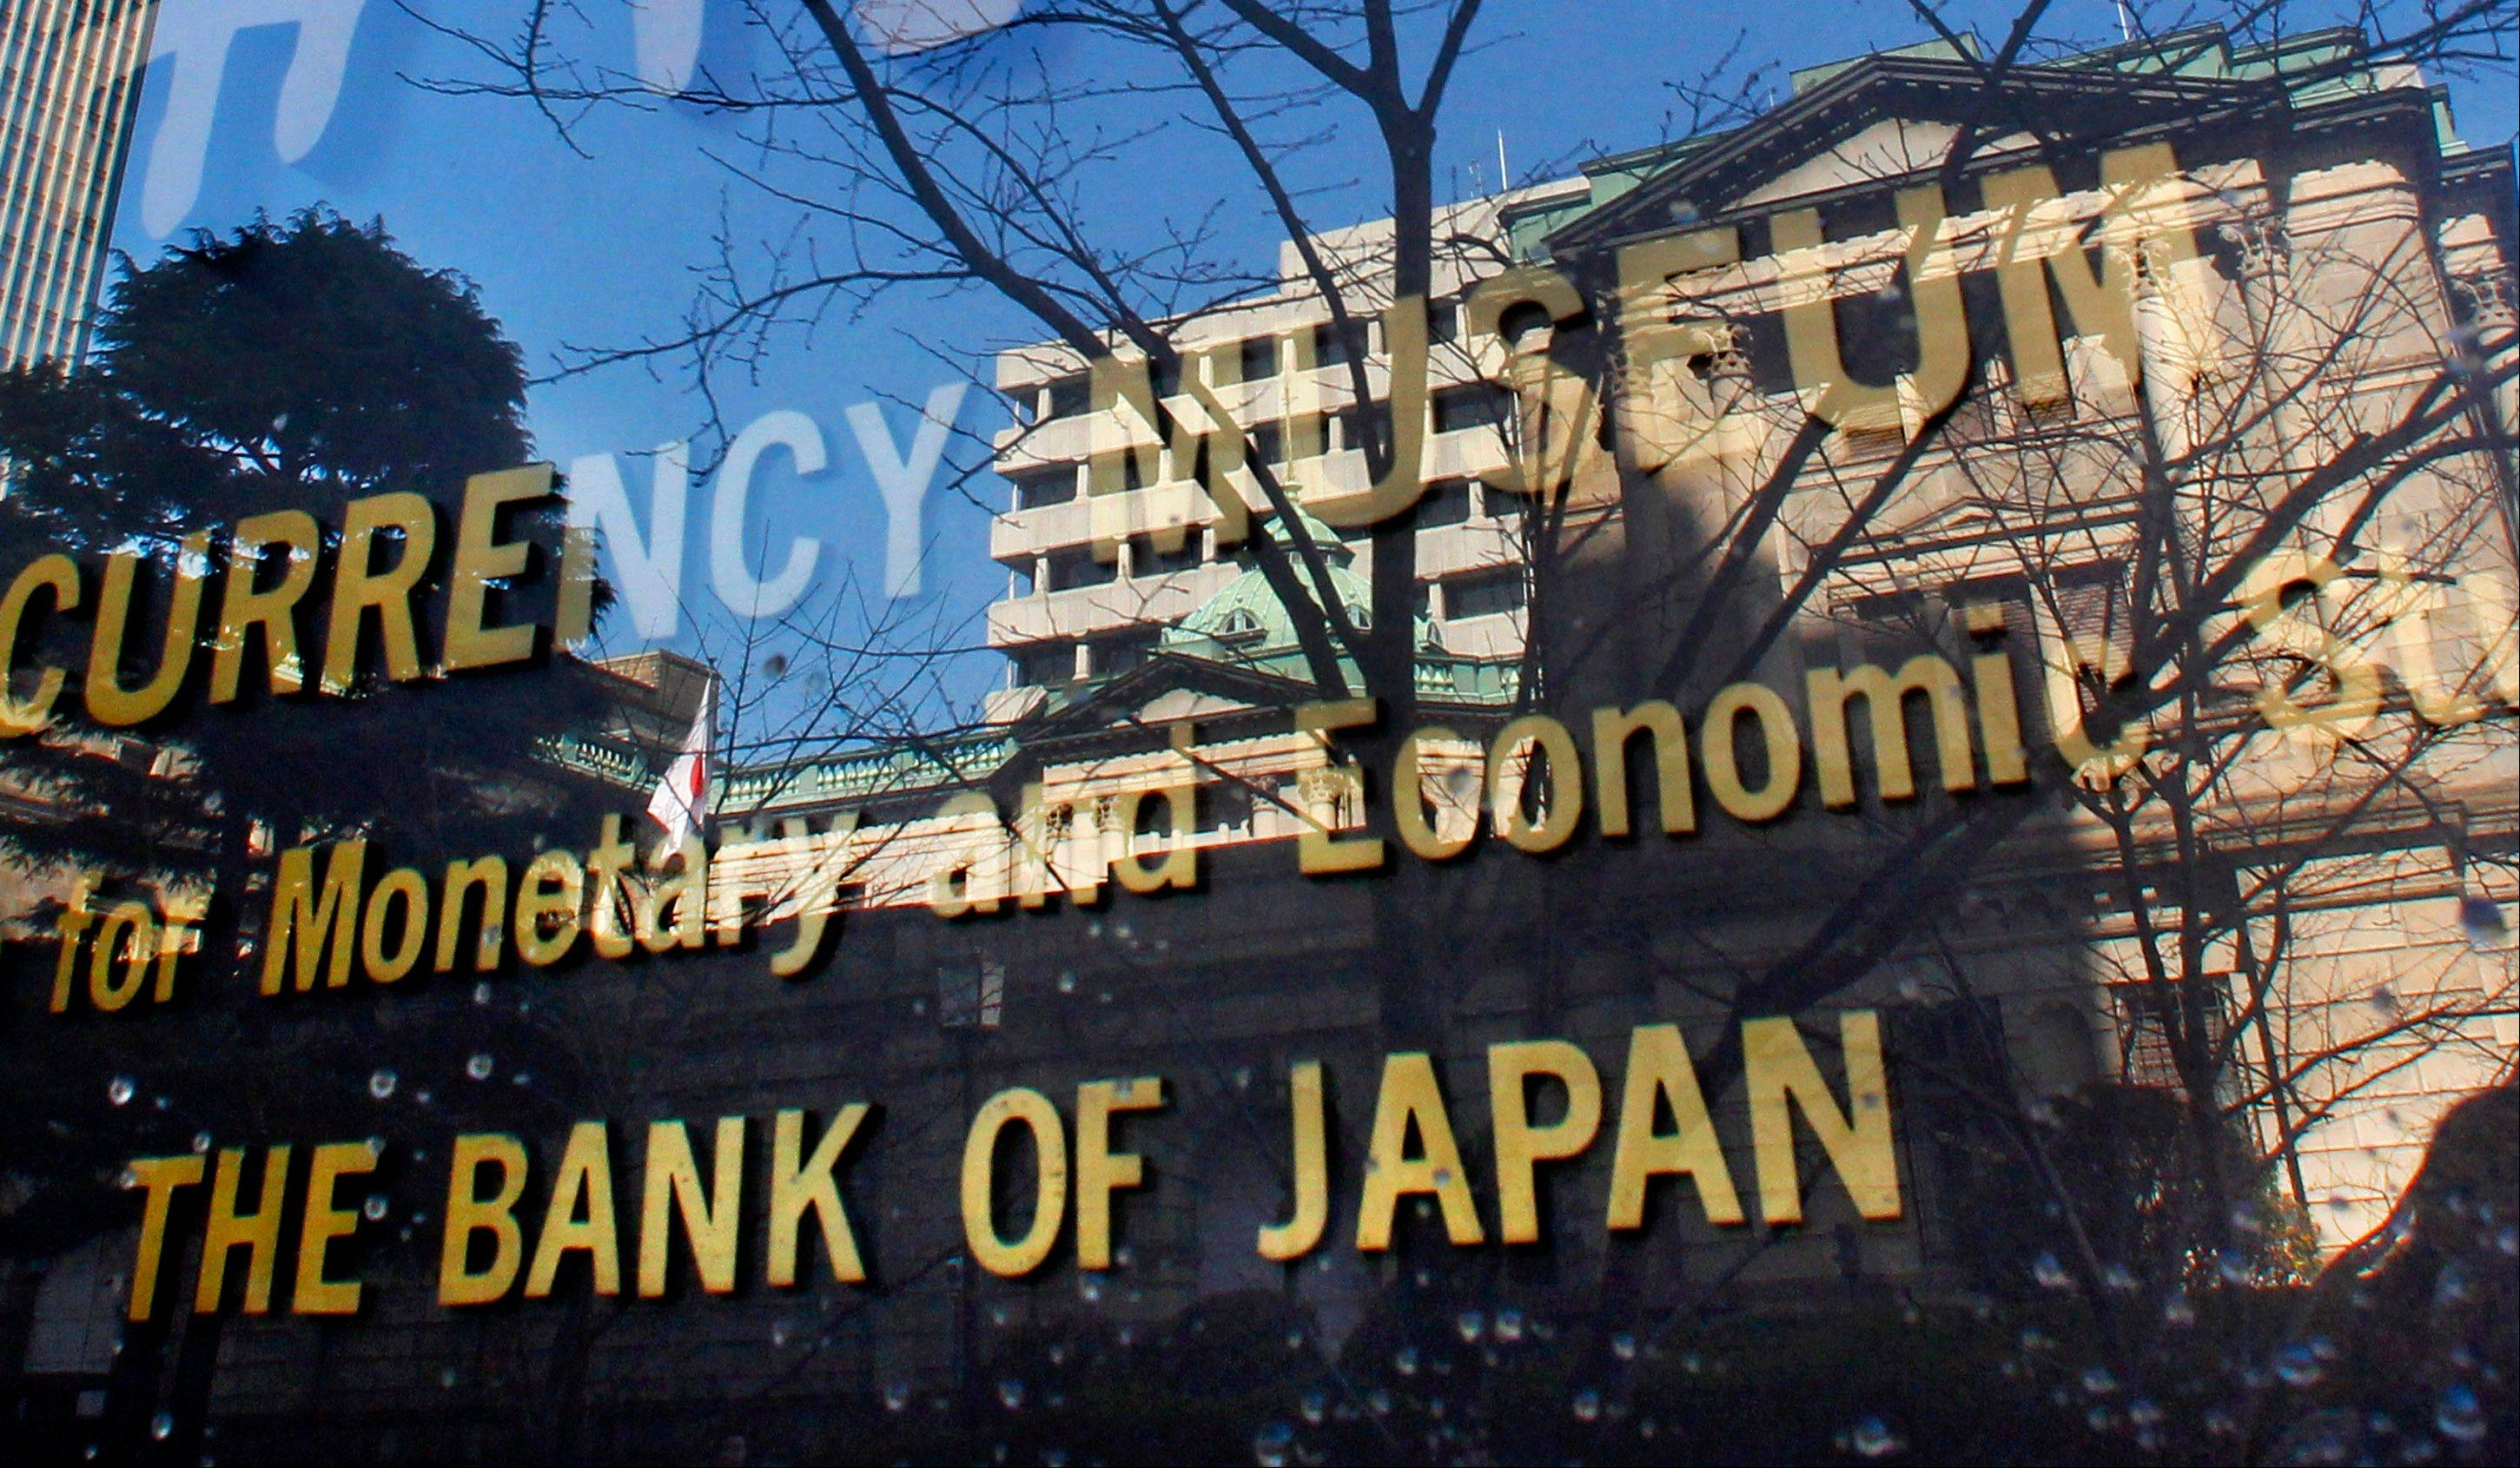 The Bank of Japan building is reflected on the glass covering the plate of its adjunct museum in Tokyo. Japan's central bank expanded its monetary easing by 10 trillion yen ($126 billion) Wednesday.